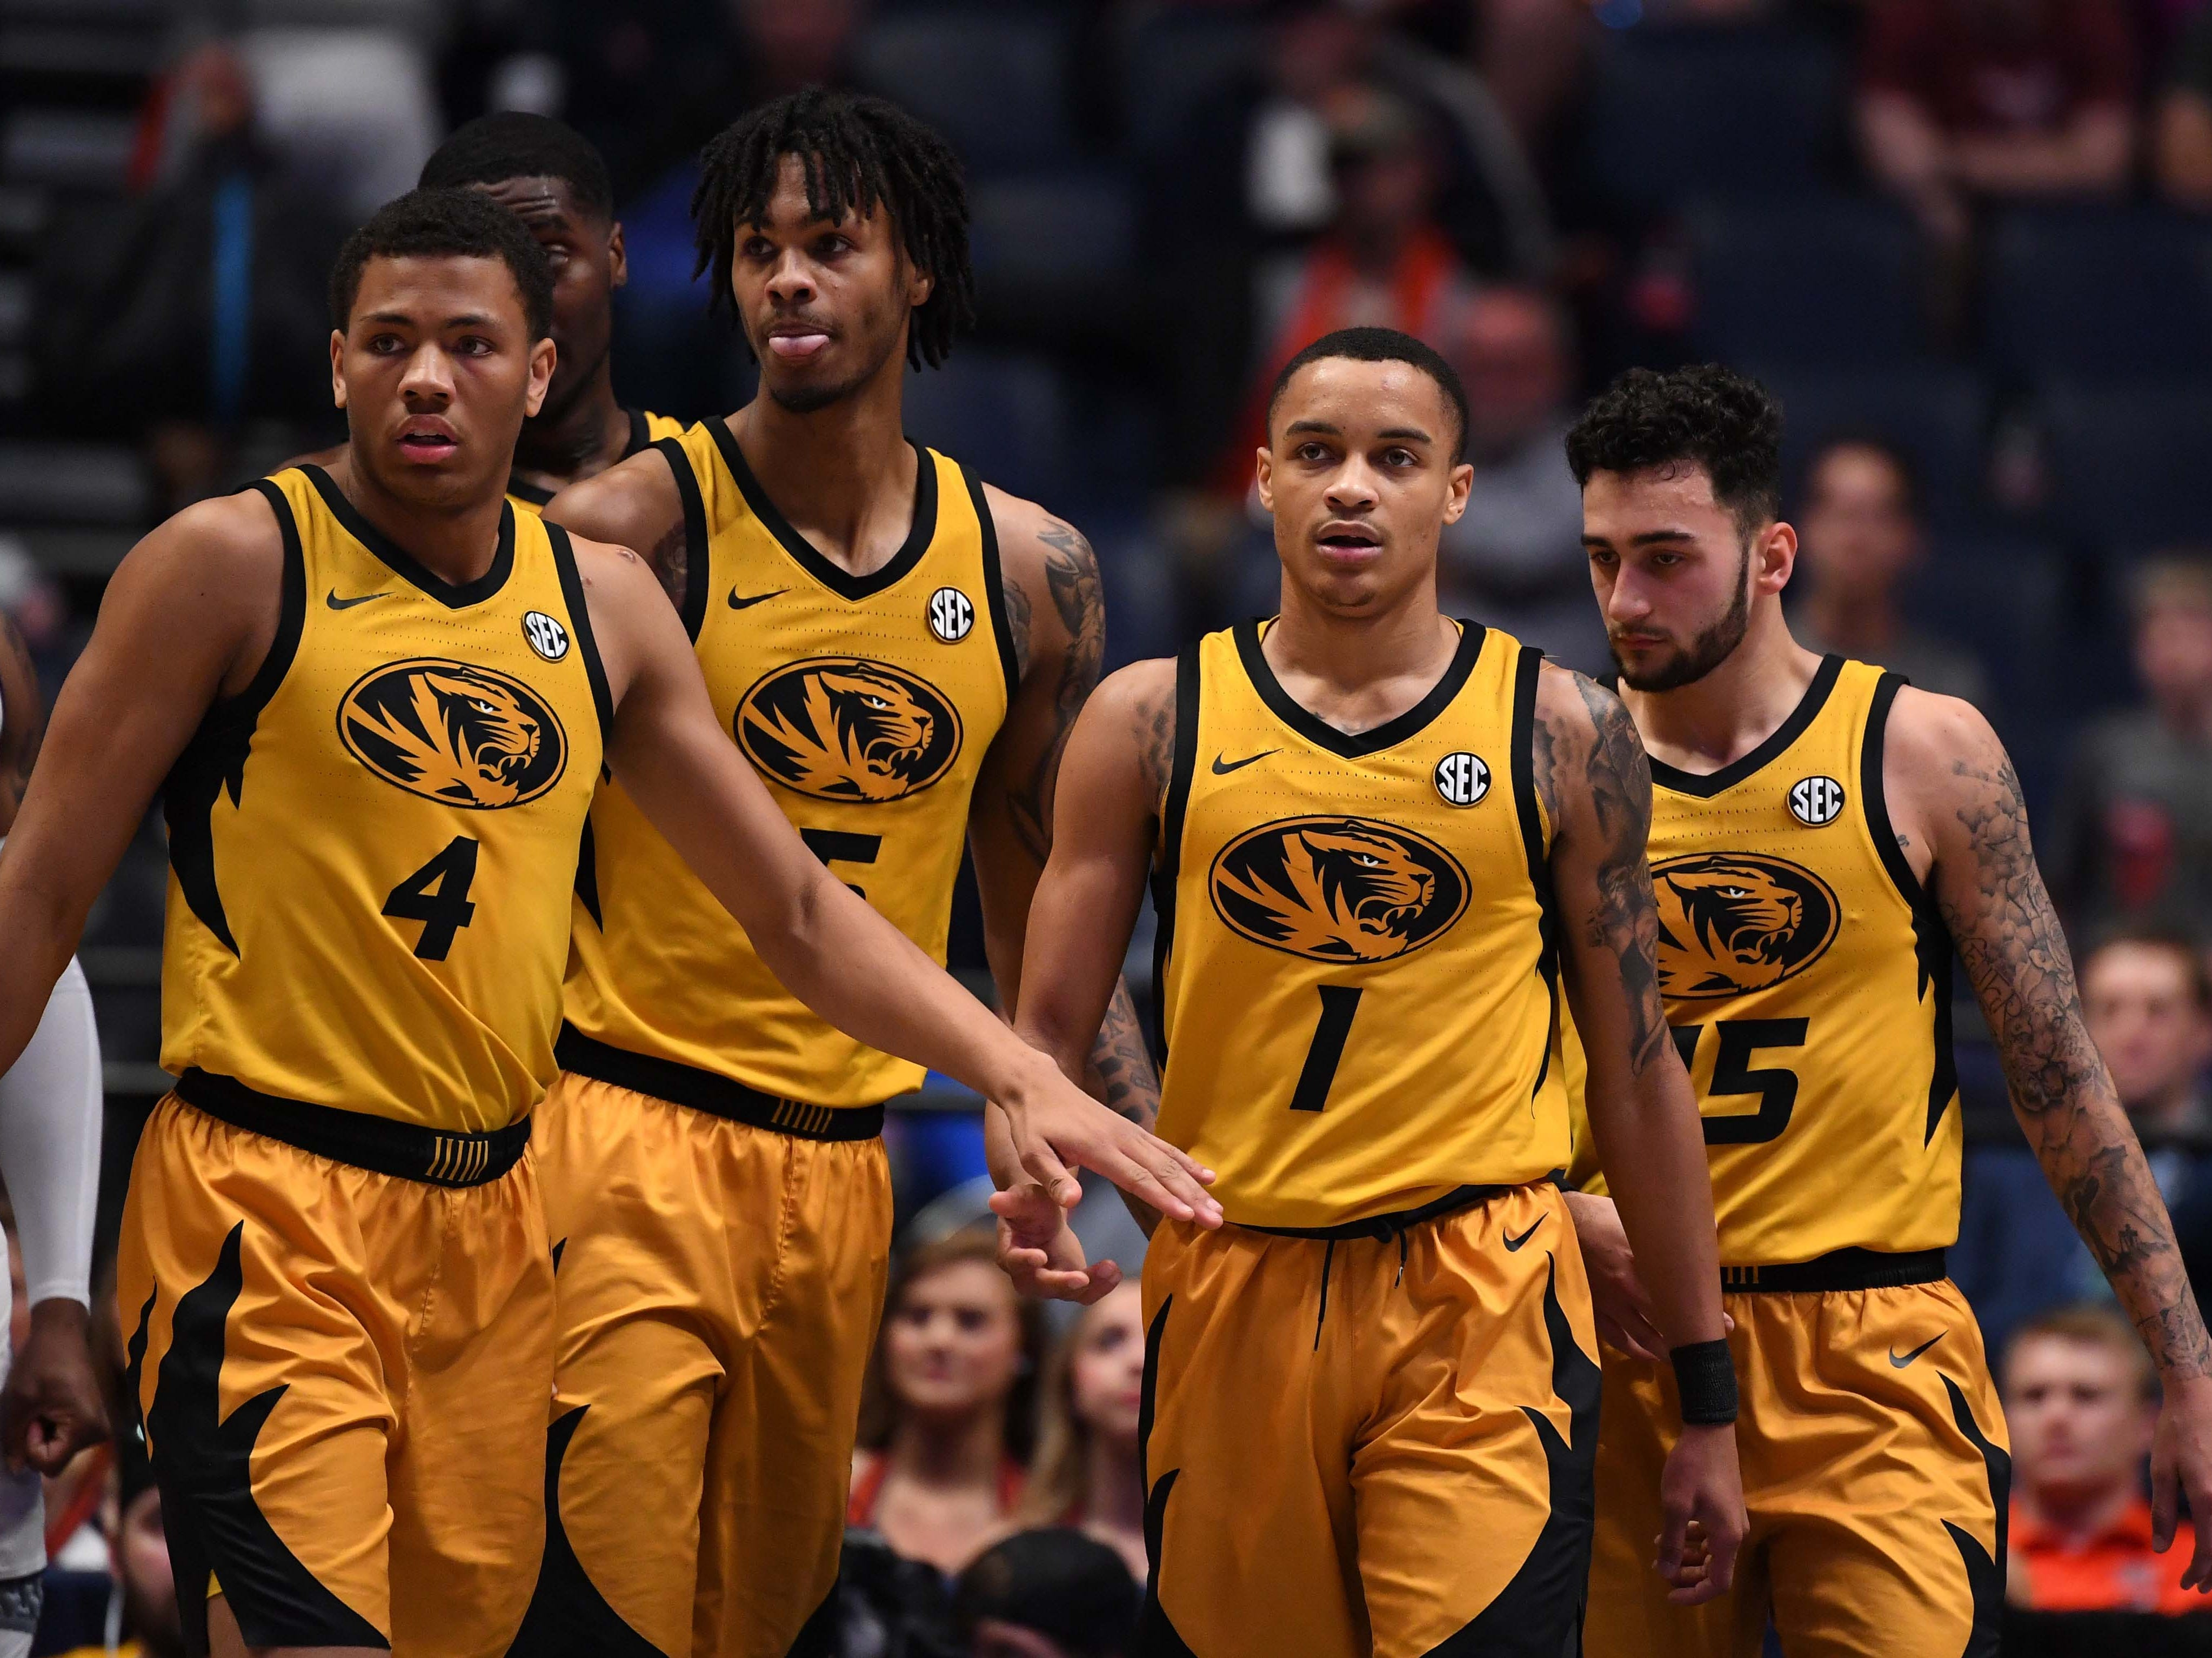 Mar 14, 2019; Nashville, TN, USA; Missouri Tigers guard Xavier Pinson (1) is congratulated by teammates after a play against the Auburn Tigers during the first half of the SEC conference tournament at Bridgestone Arena. Mandatory Credit: Christopher Hanewinckel-USA TODAY Sports